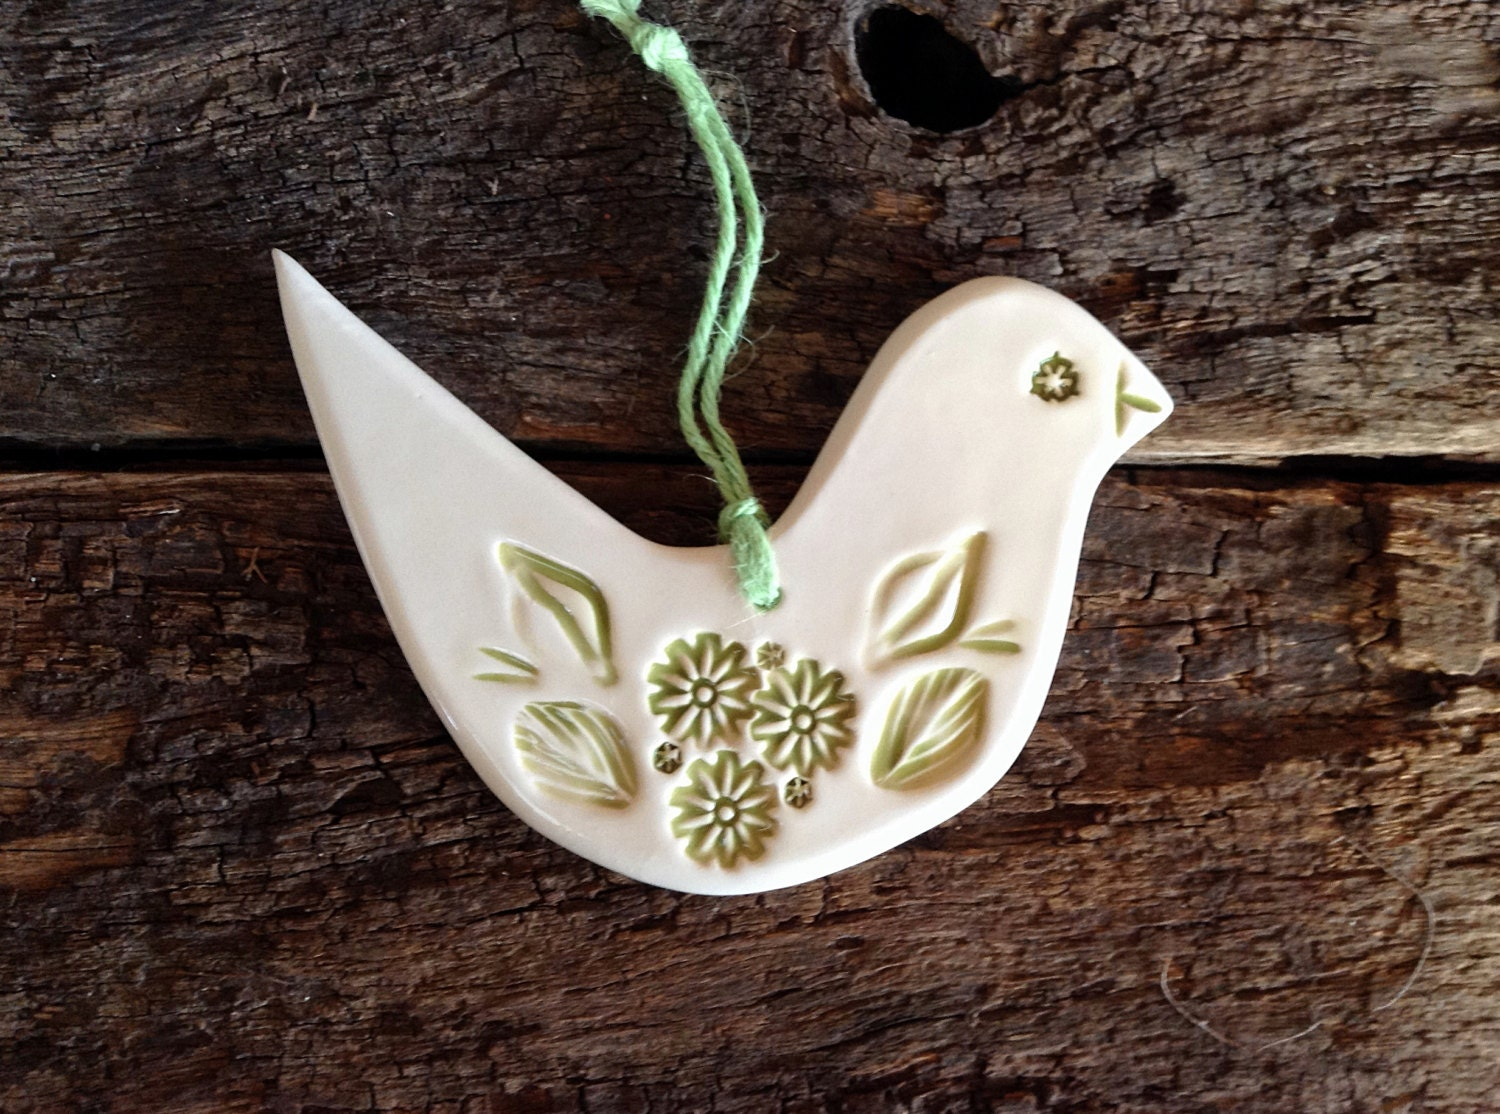 Ceramic Decorative Bird Handmade - Dove Green and White, Wall, Garden Decoration